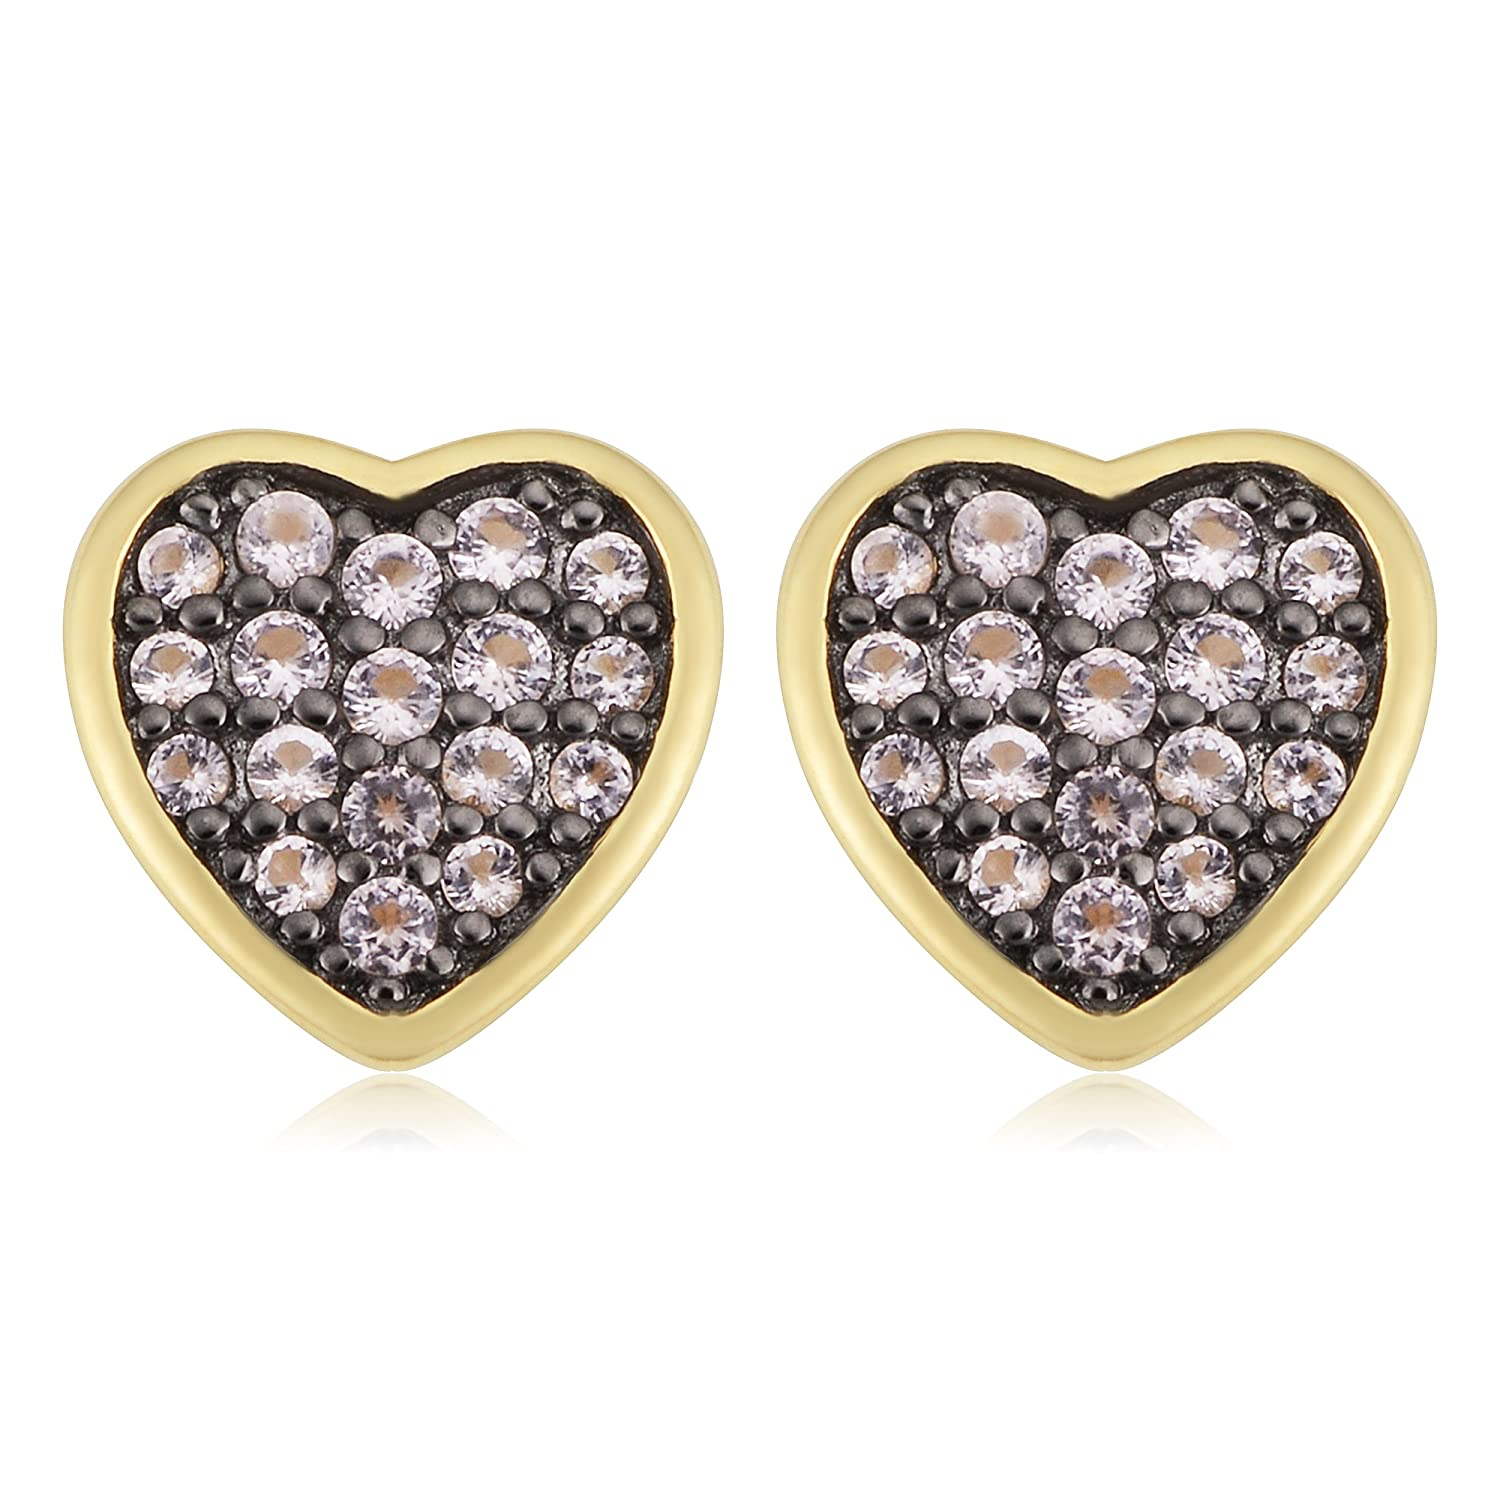 Kooljewelry Yellow Gold Over Sterling Silver with Rose Colored Nano Glass Heart Stud Earrings